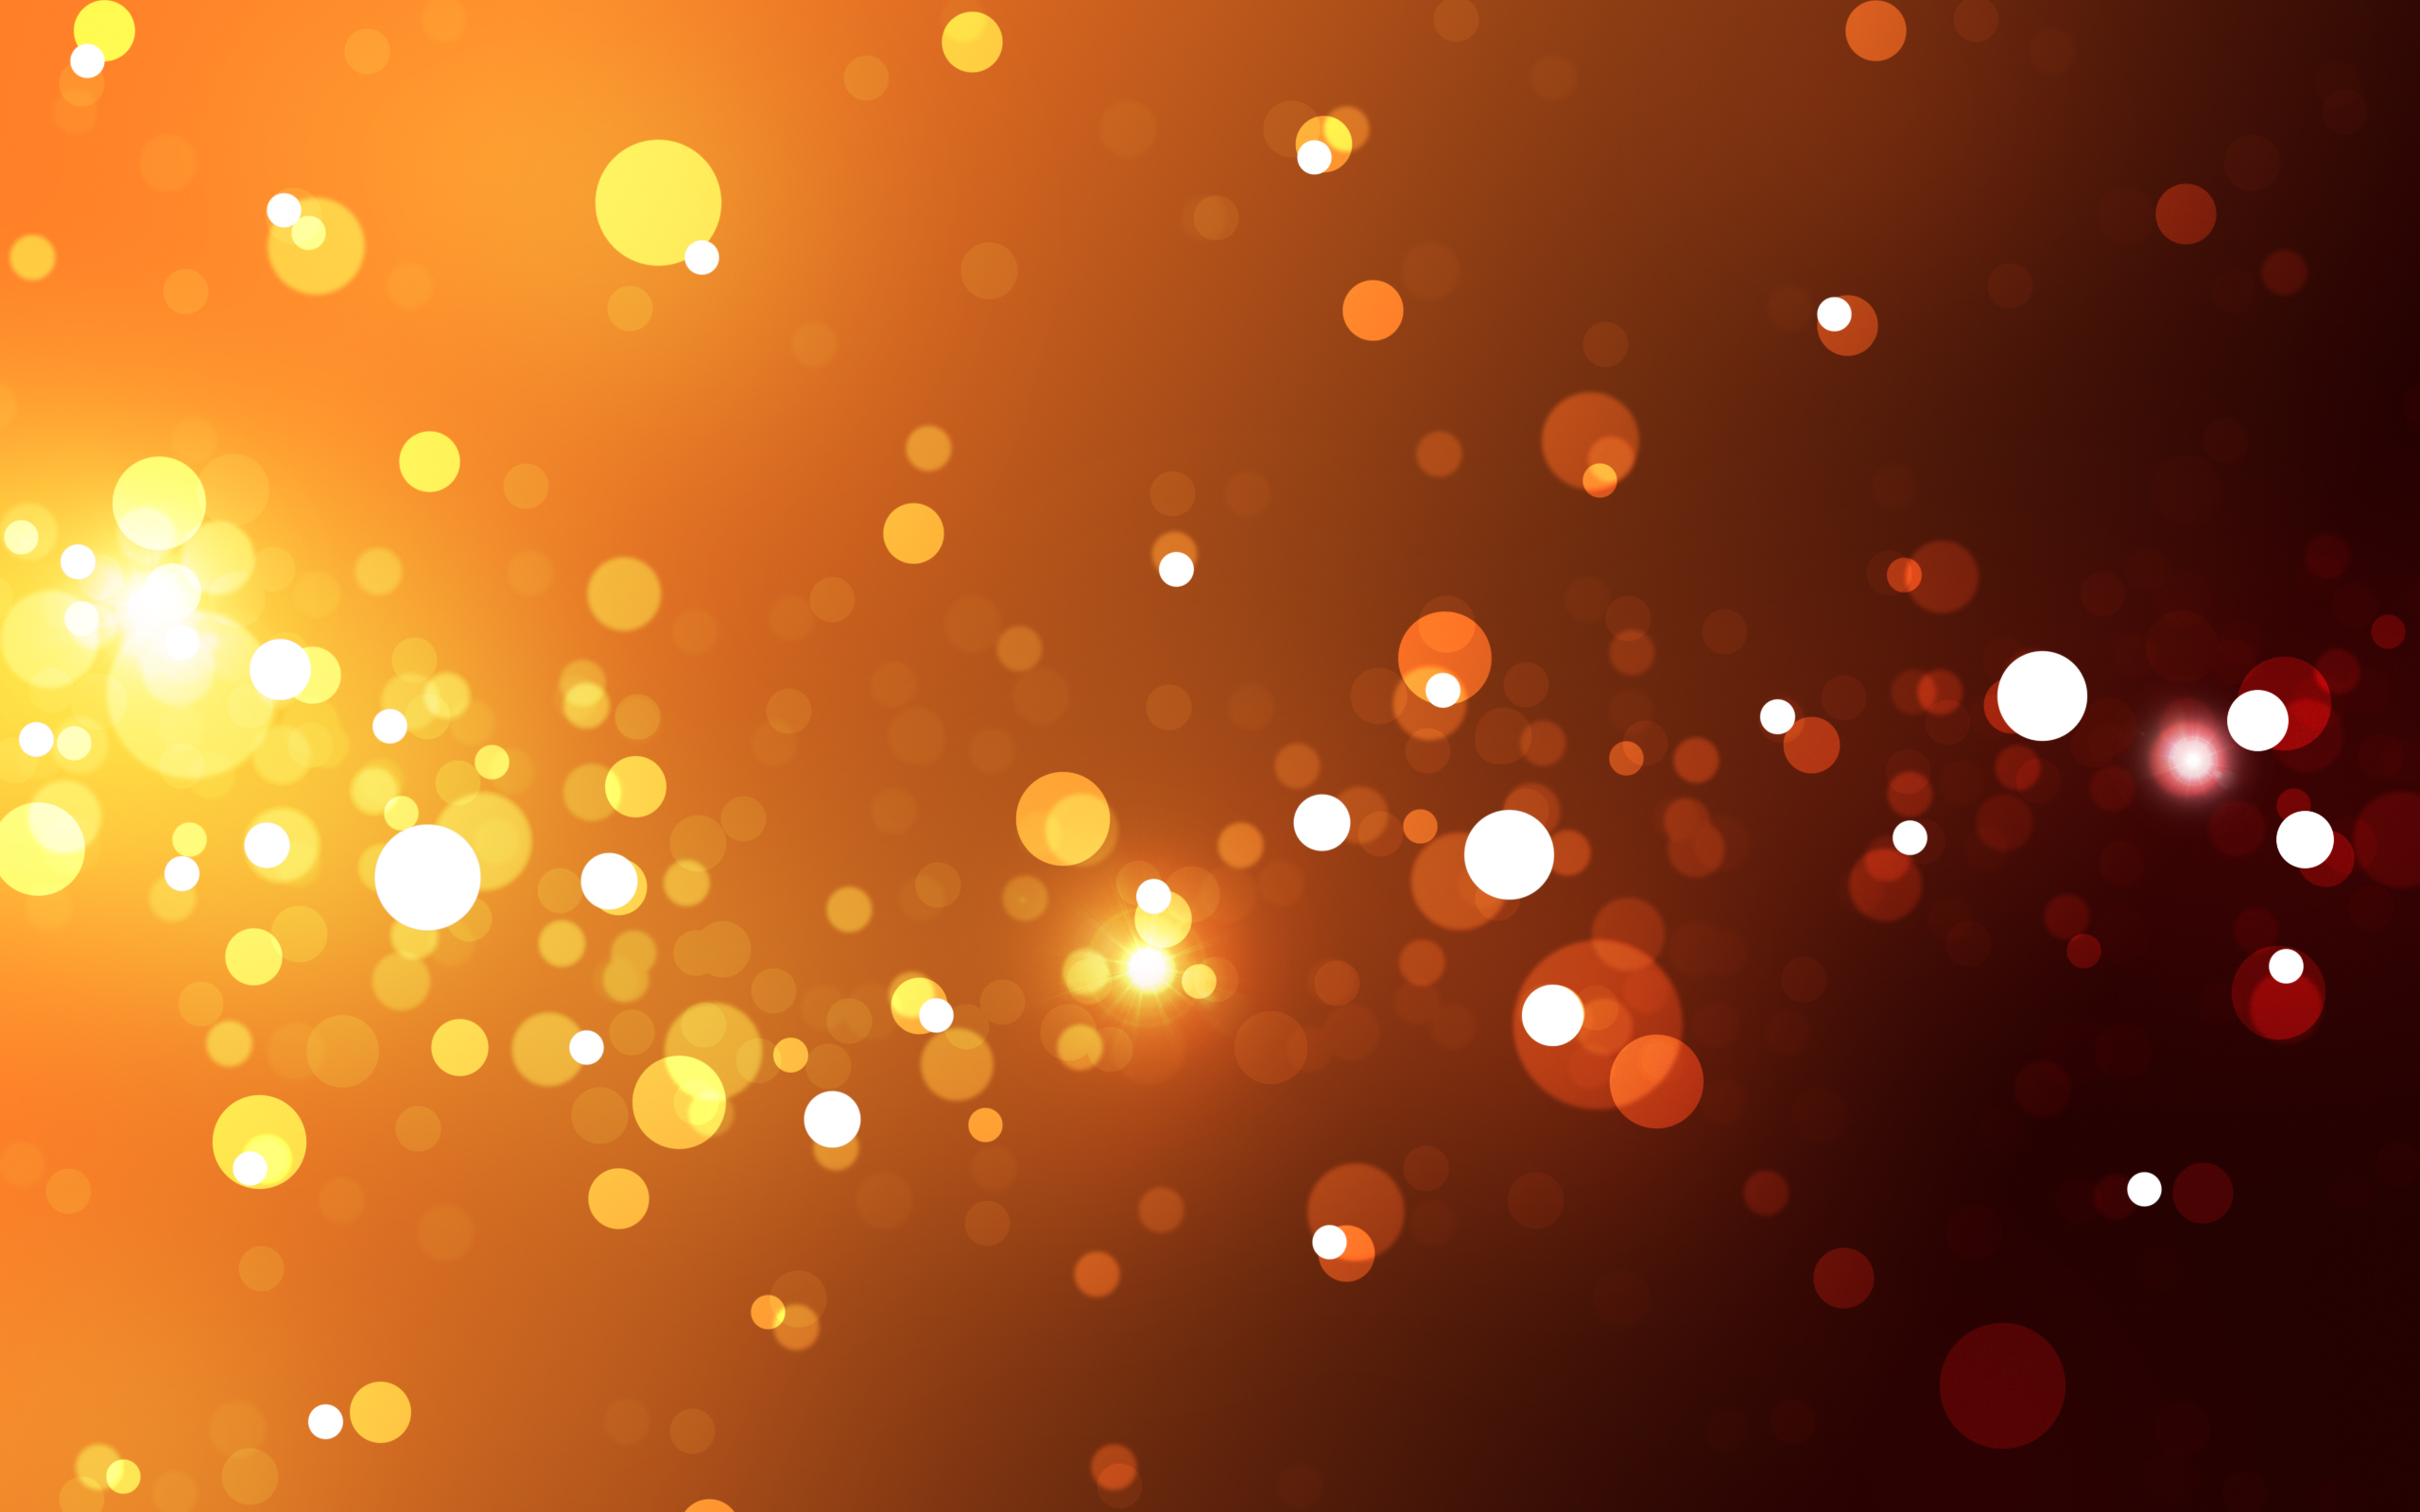 Orange Light Wallpaper HD